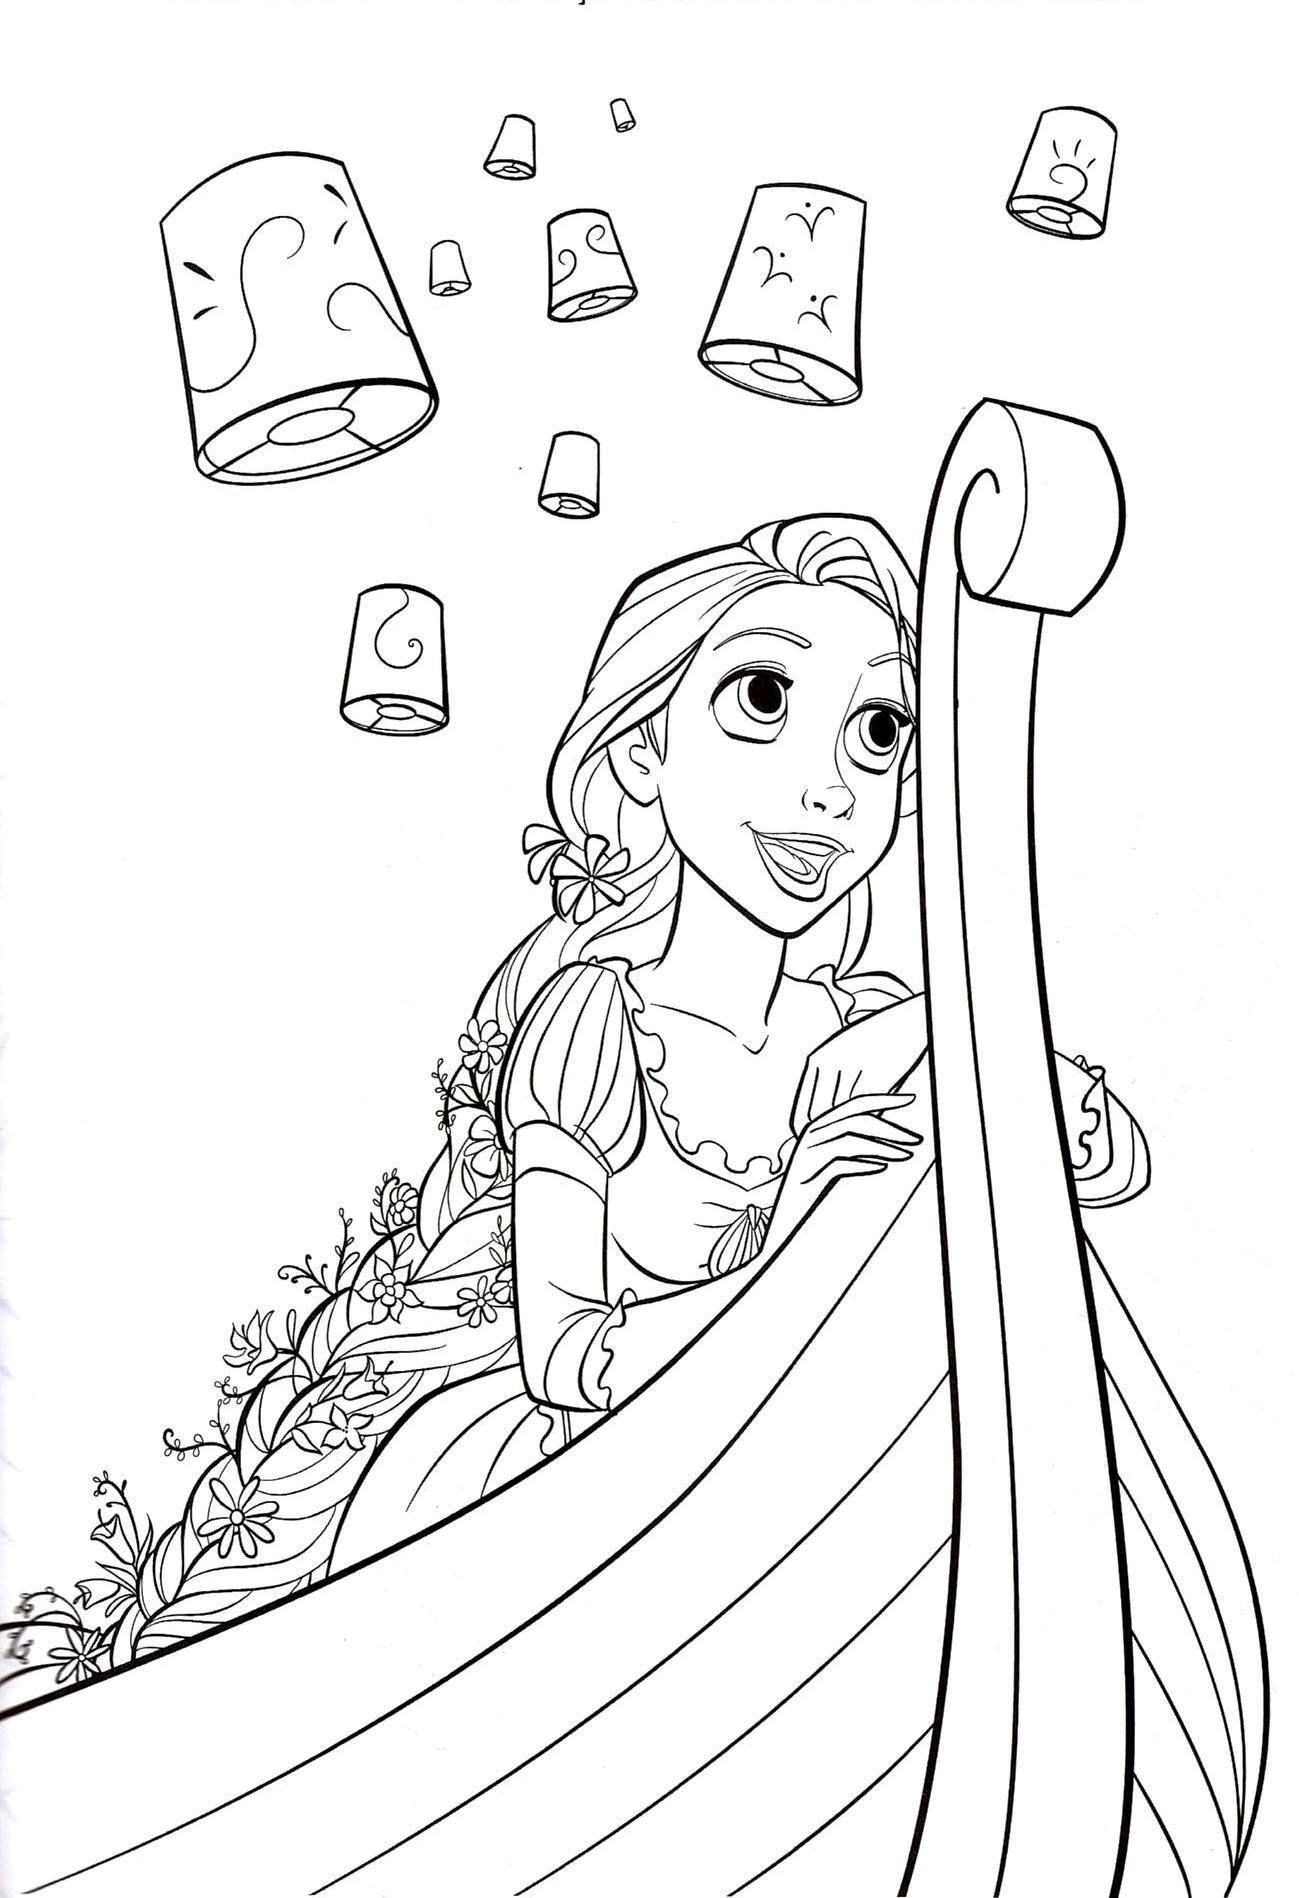 Disney Rapunzel Coloring Pages Free Printable Disney Princess ...